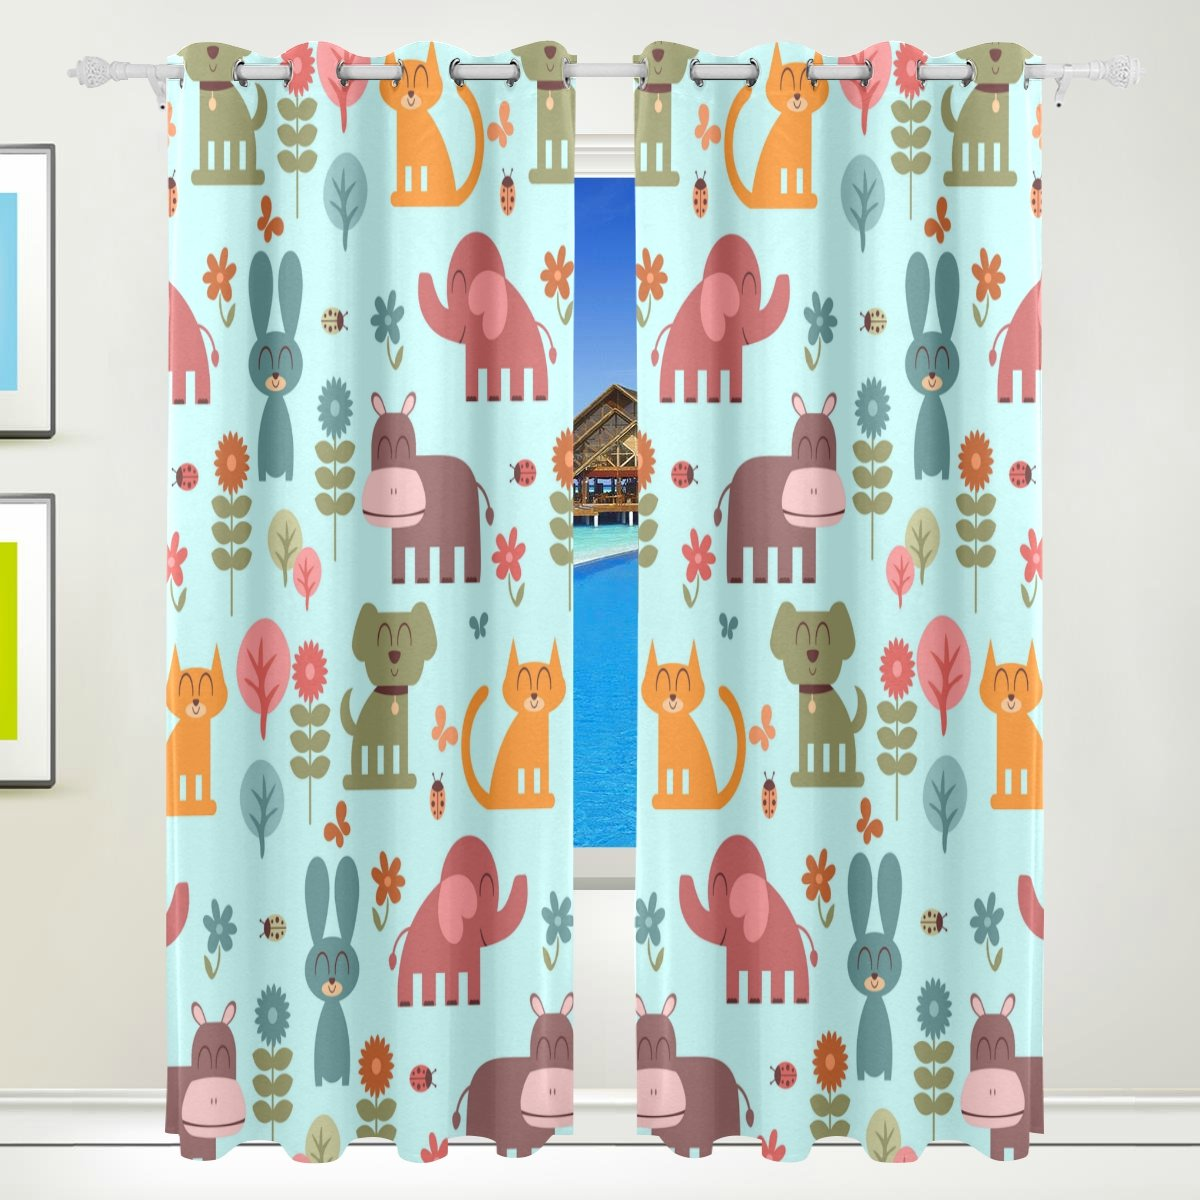 Vantaso Window Curtains 84 Inch Long Smile Cute Animals Dog Elephant Cat for Kids Girls Boys Bedroom Living Room Polyester 2 Pannels